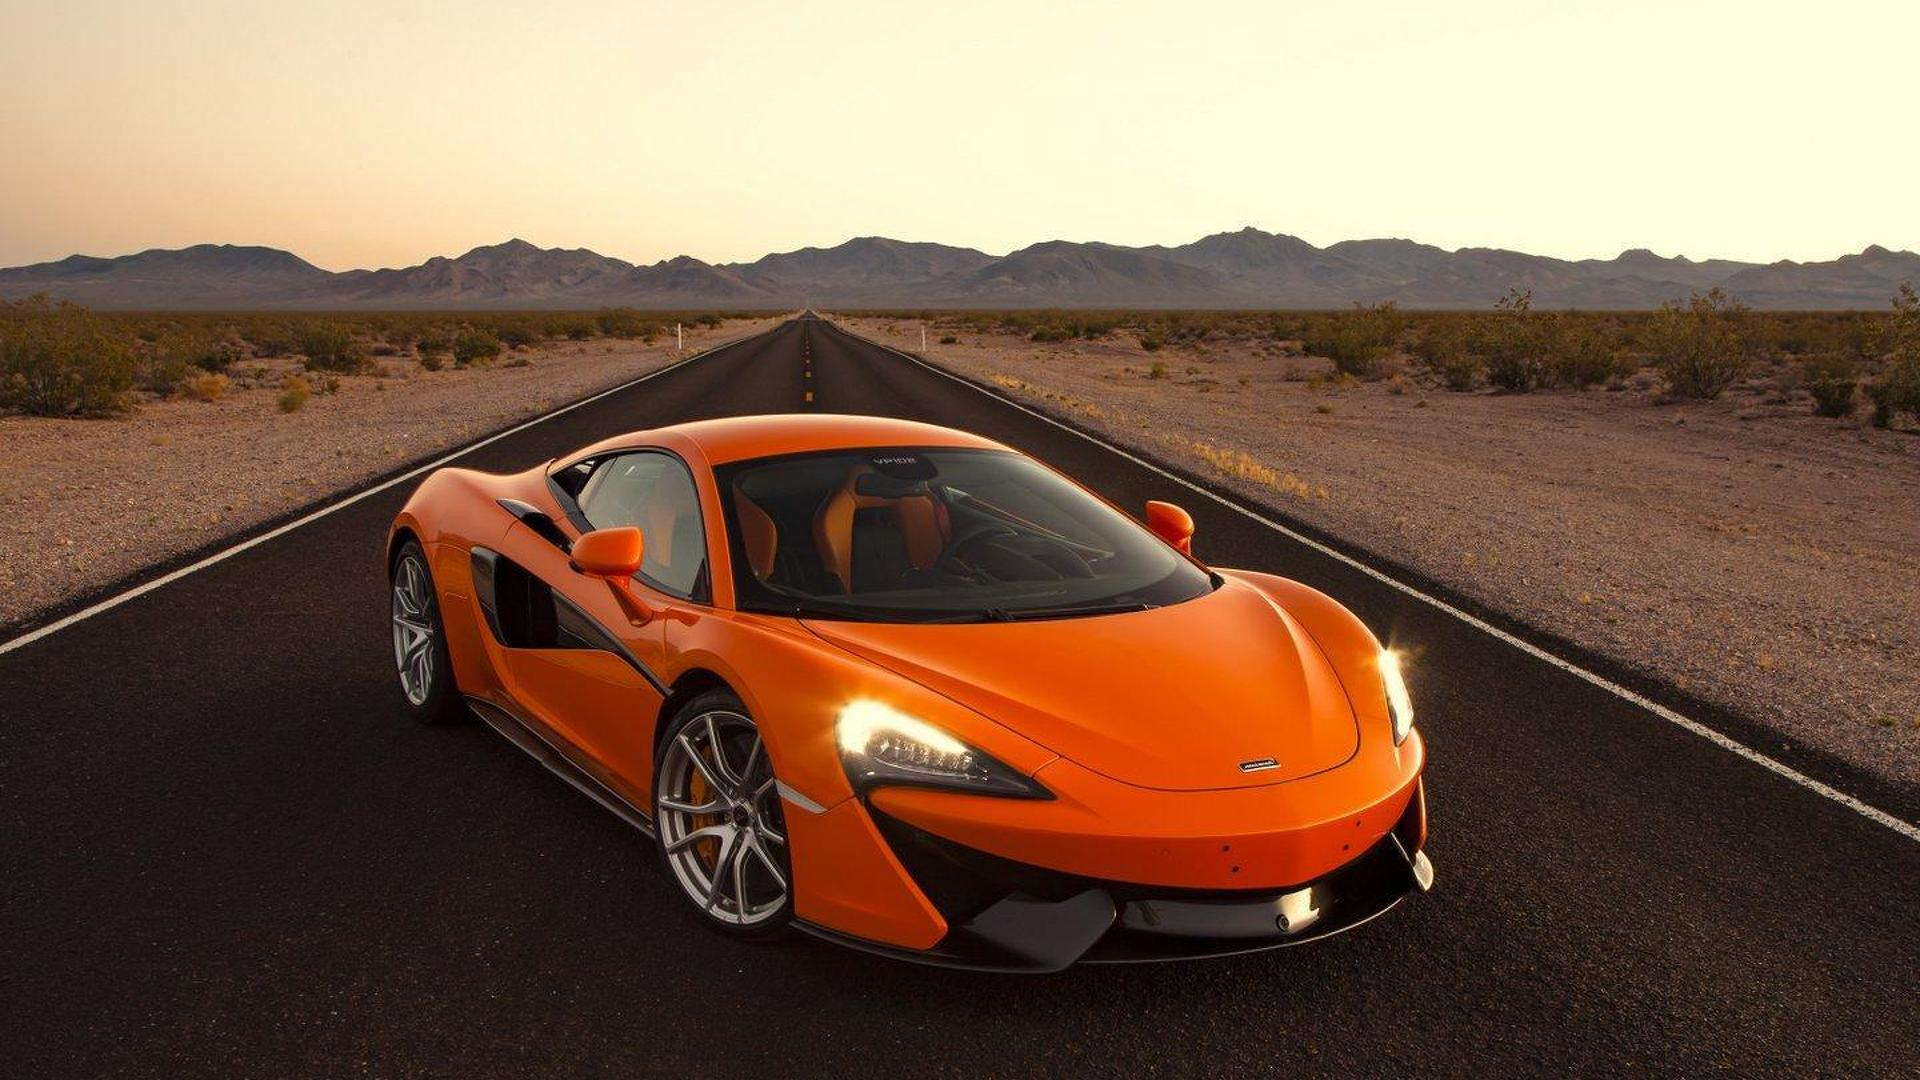 McLaren Sport Series goes into production